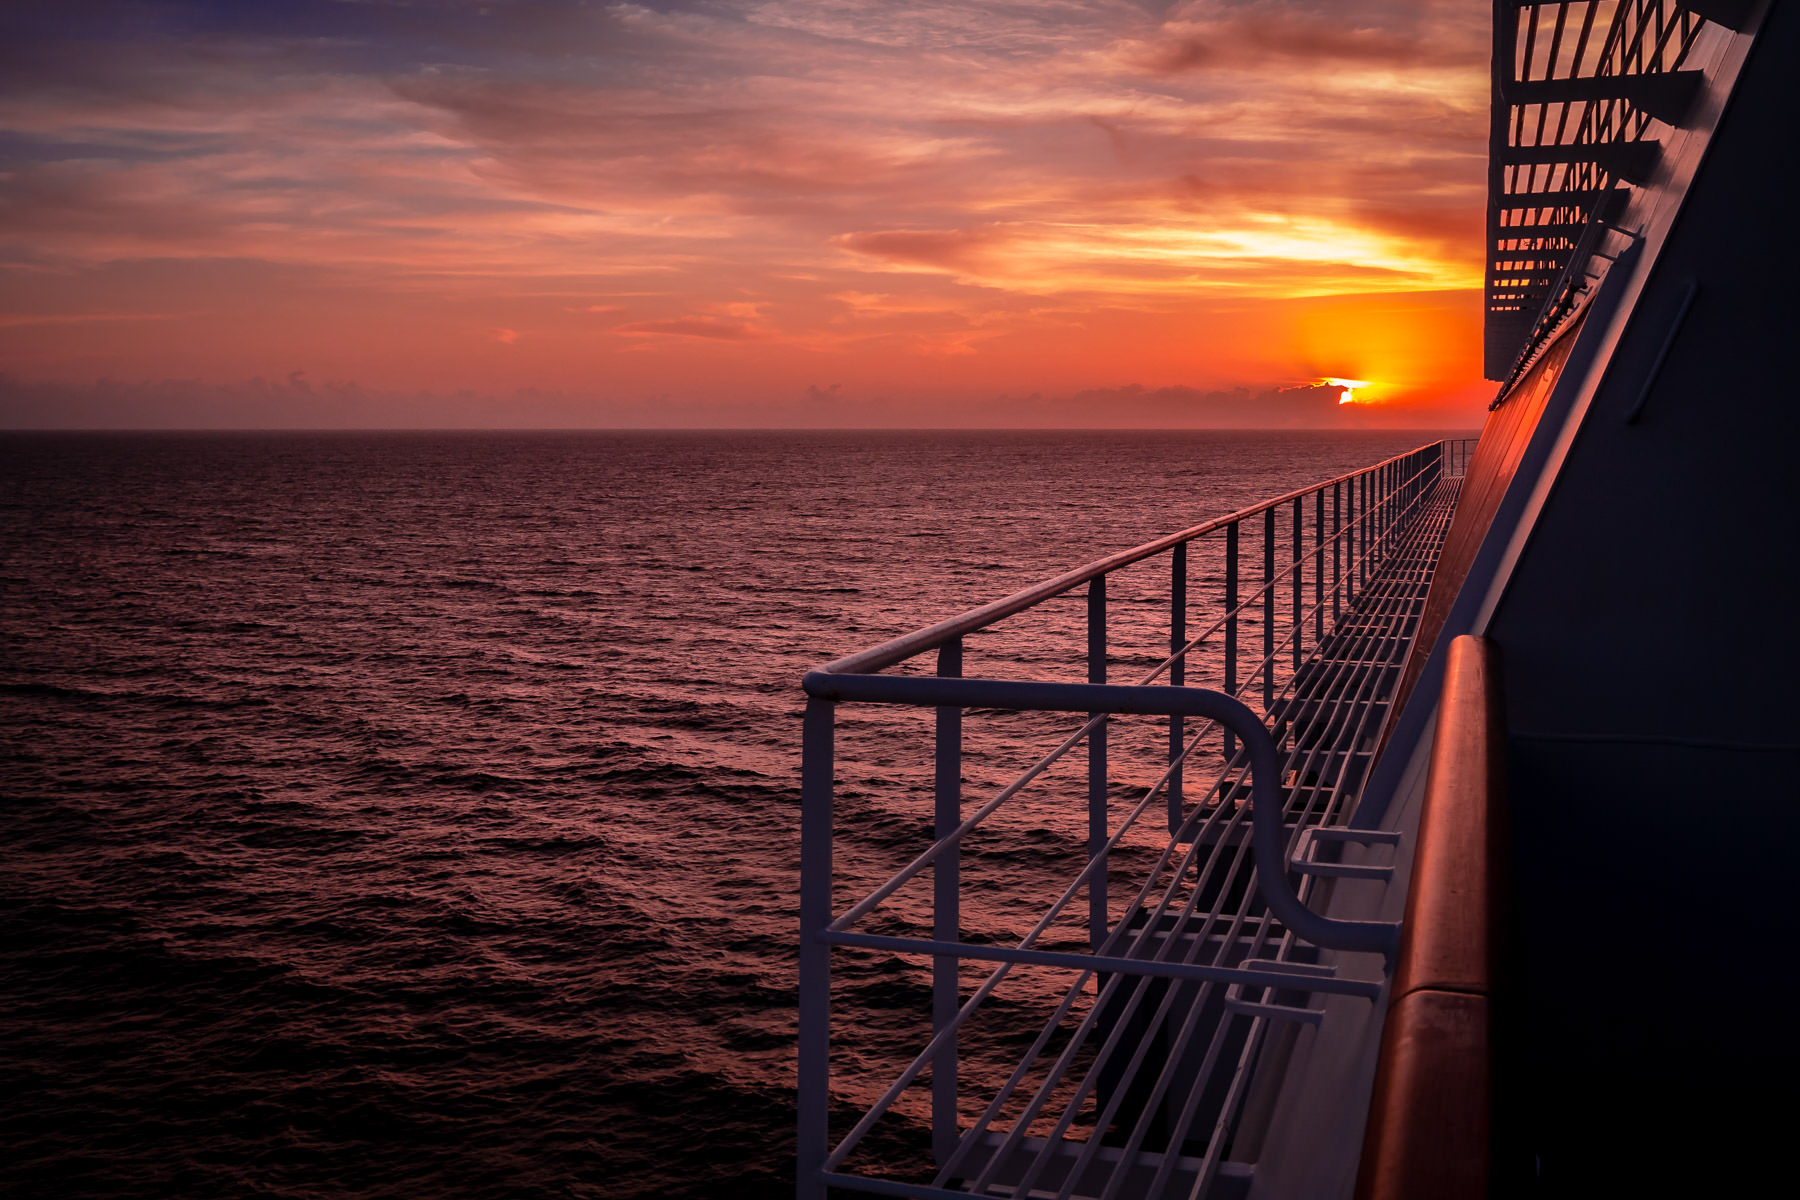 The sun rises over the Straits of Florida as seen from the cruise ship Carnival Magic.